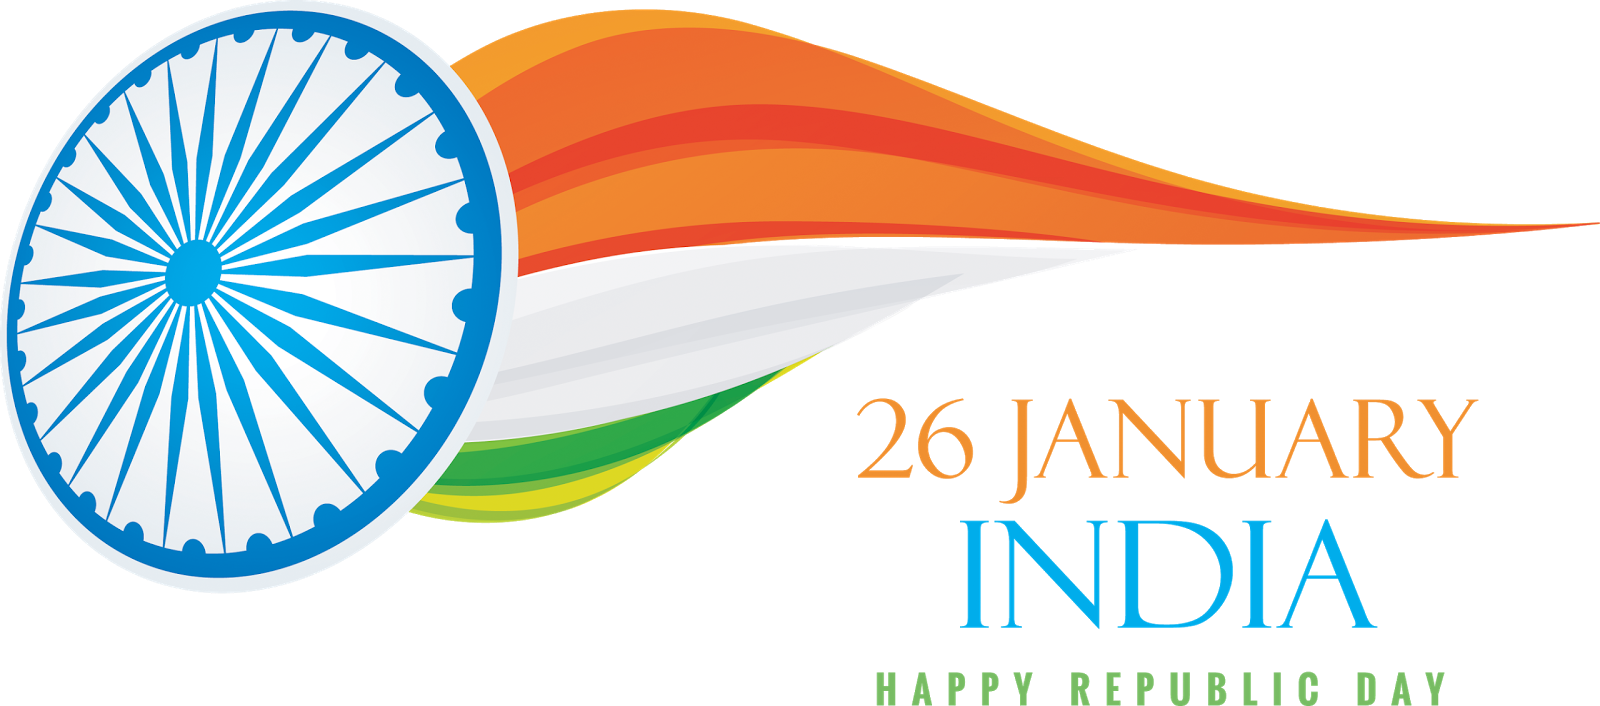 Indians clipart vector. Indian flag png india